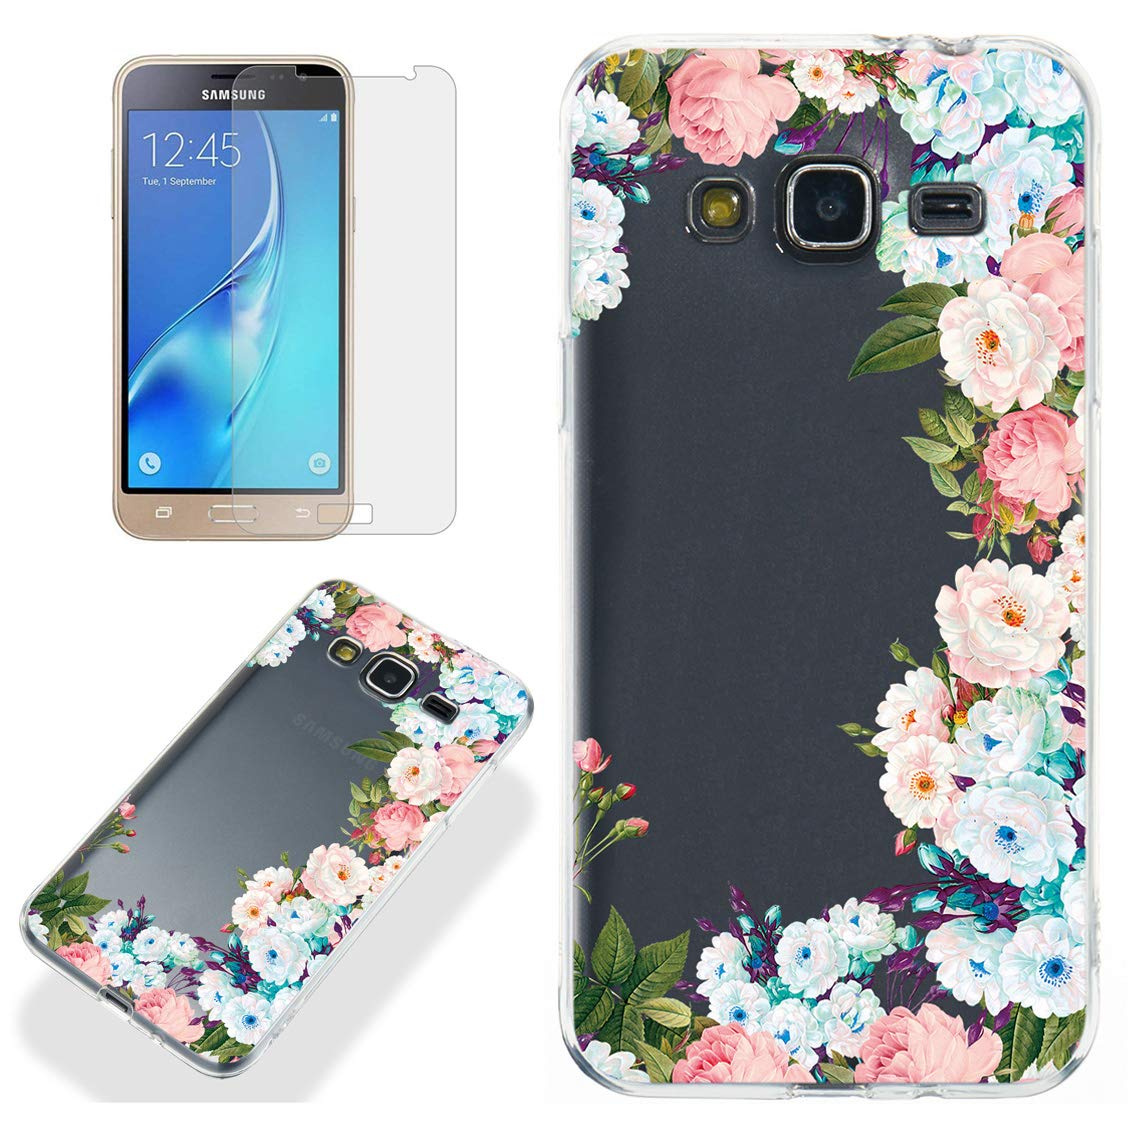 Clear Case for Samsung Galaxy J3 2016 with Screen Protector,QFFUN Ultra Thin Slim Fit Soft Transparent Silicone Phone Case Crystal TPU Bumper Shell Shockproof Protective Cover - Flowers